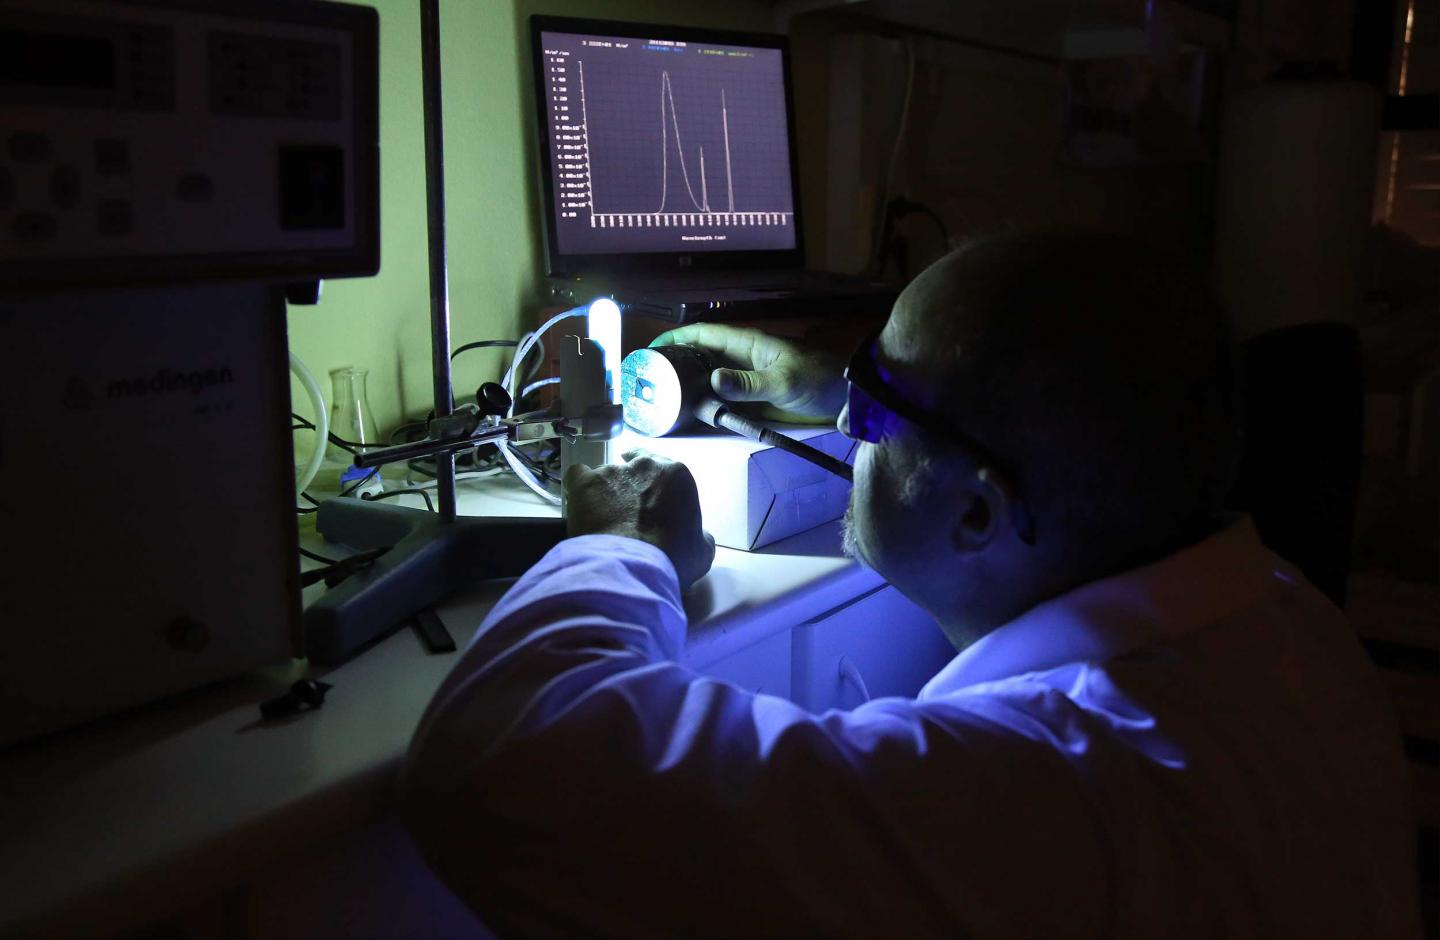 Researchers from the University of Malaga in the Laboratory of Dermatological Photobiology